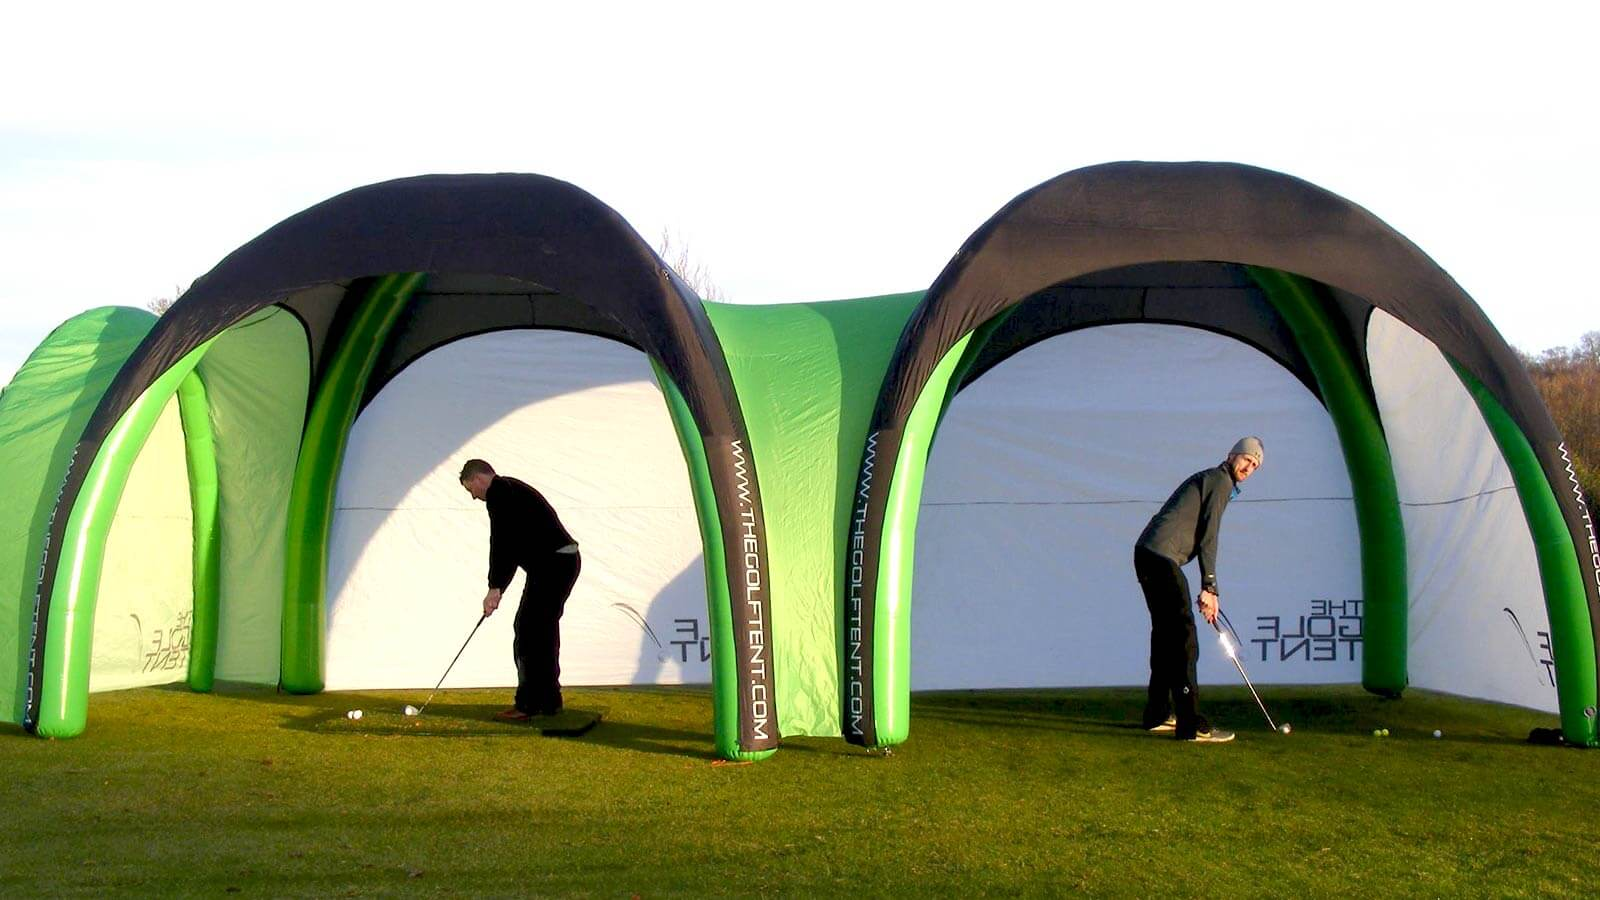 golf-tent-driving-range-product-design